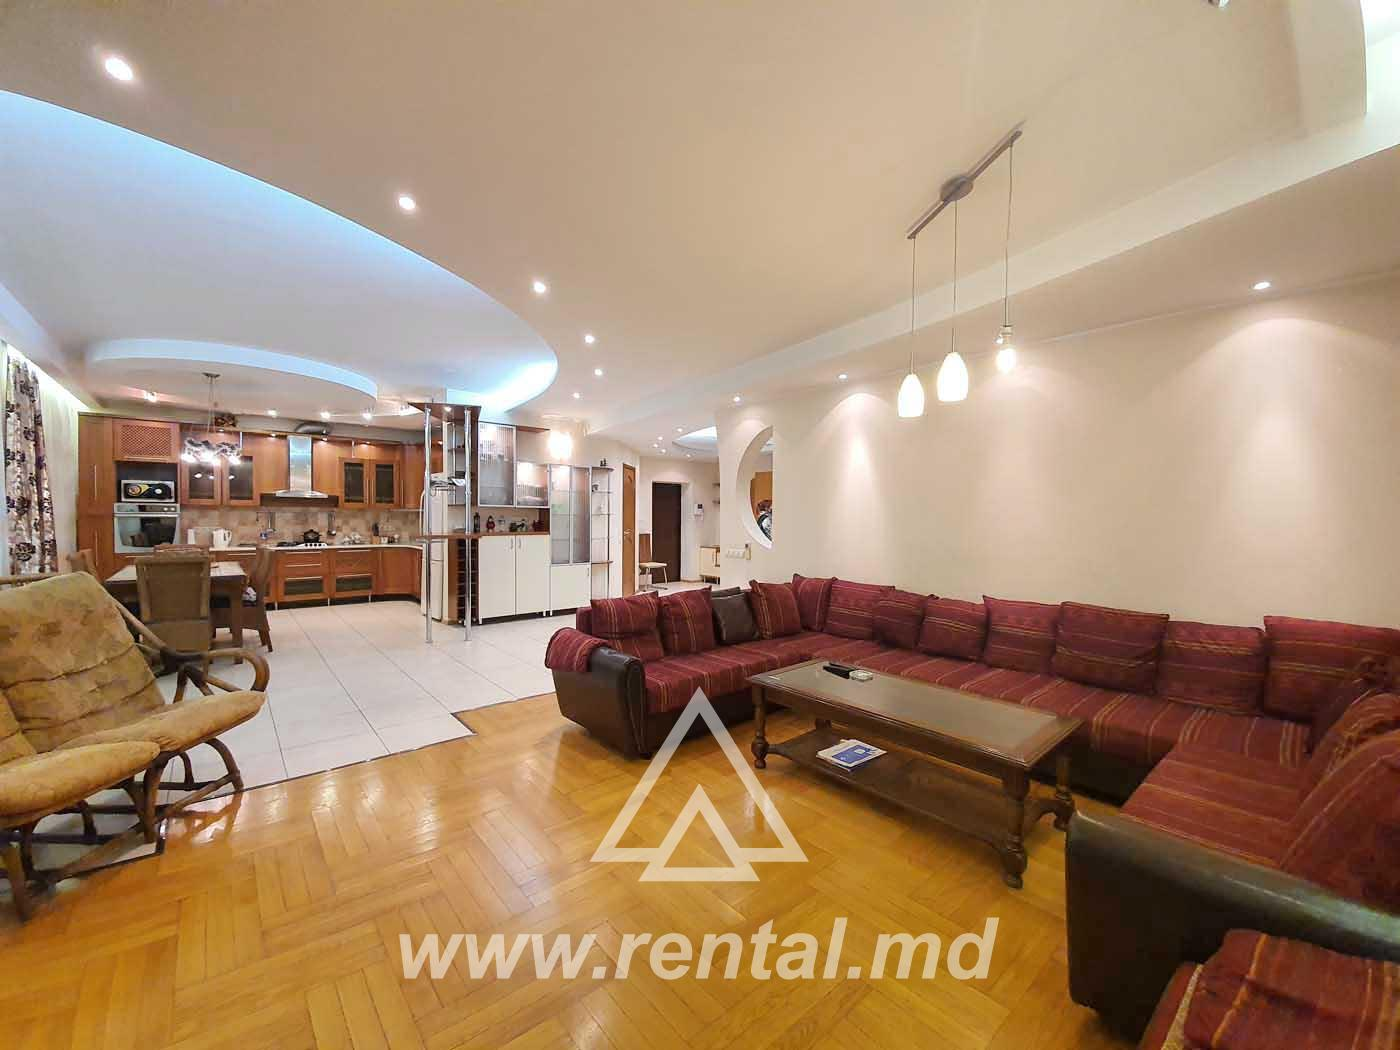 Flat for long term rent in the city center